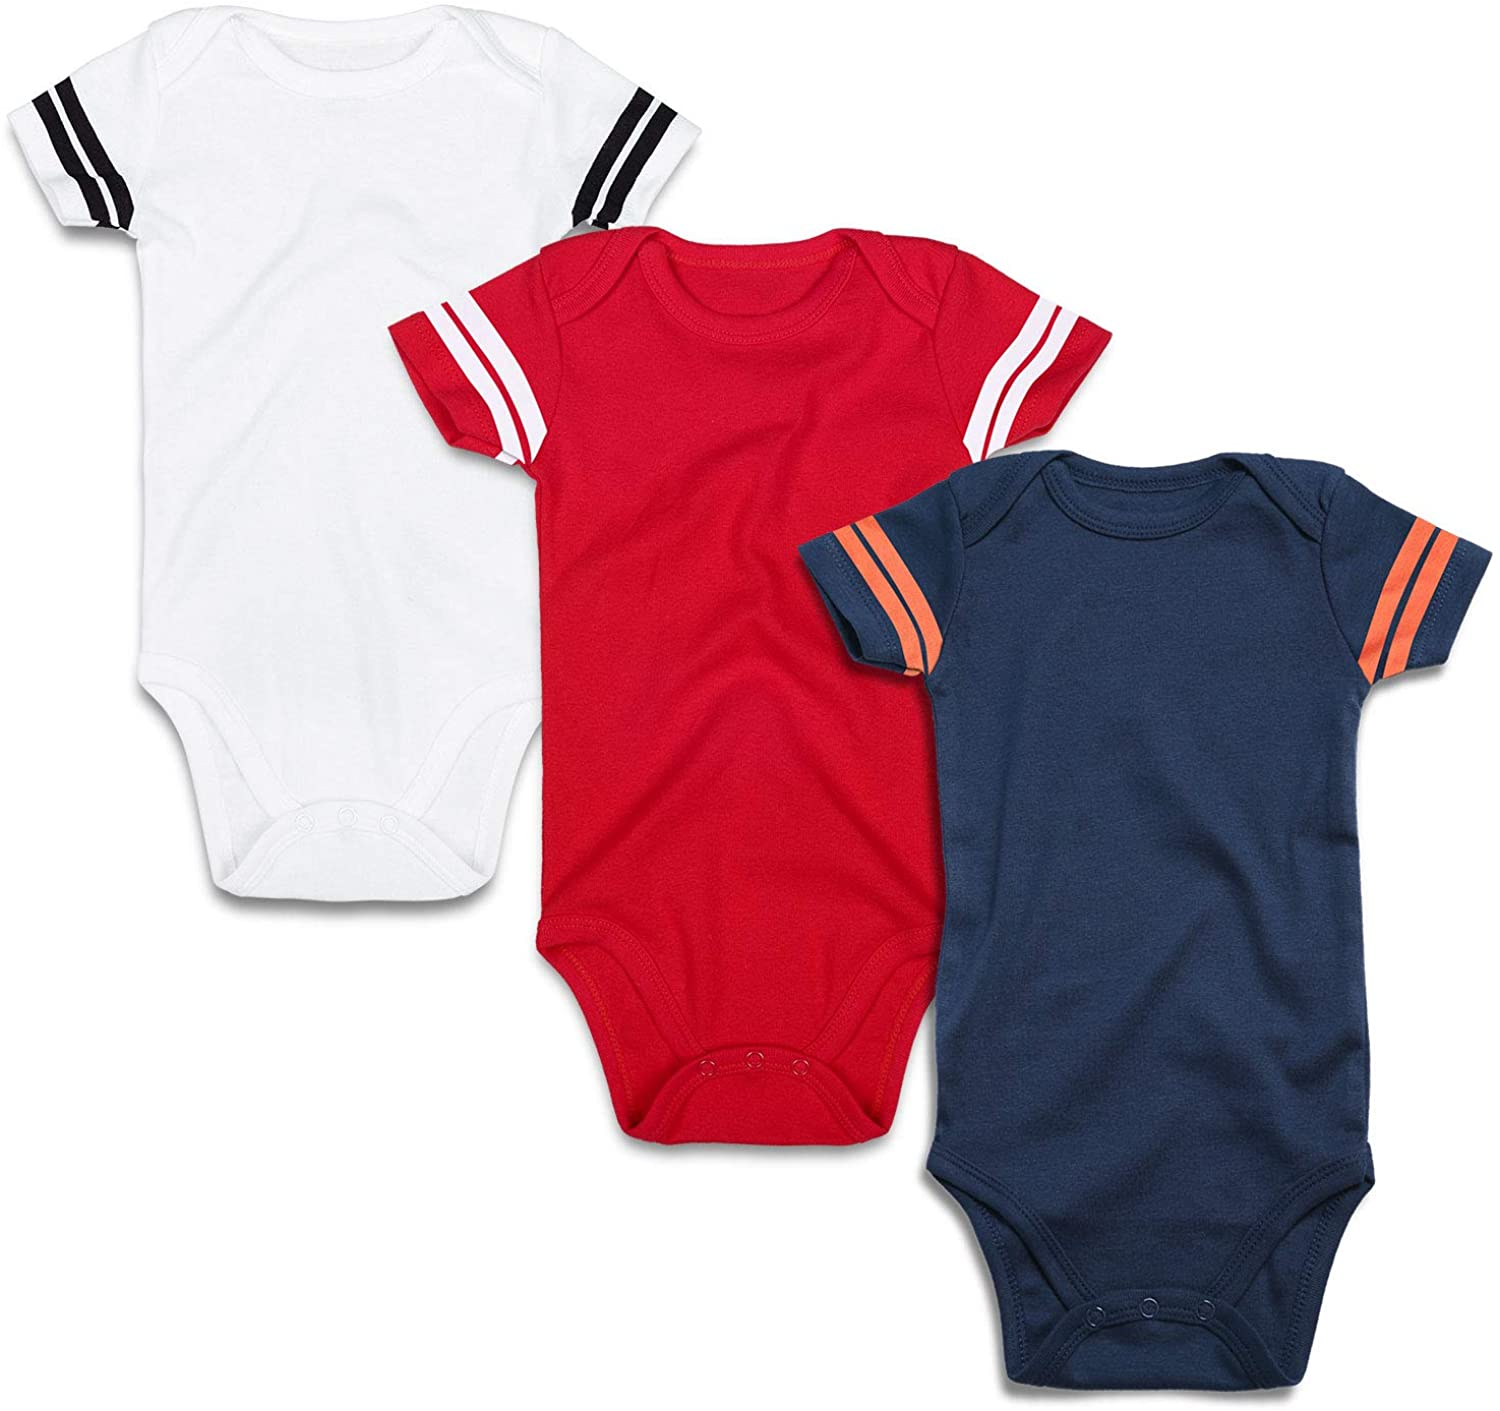 ROMPERINBOX Infant Solid Baby Football Sport Jersey Bodysuits 3 Pack 0-24 Months